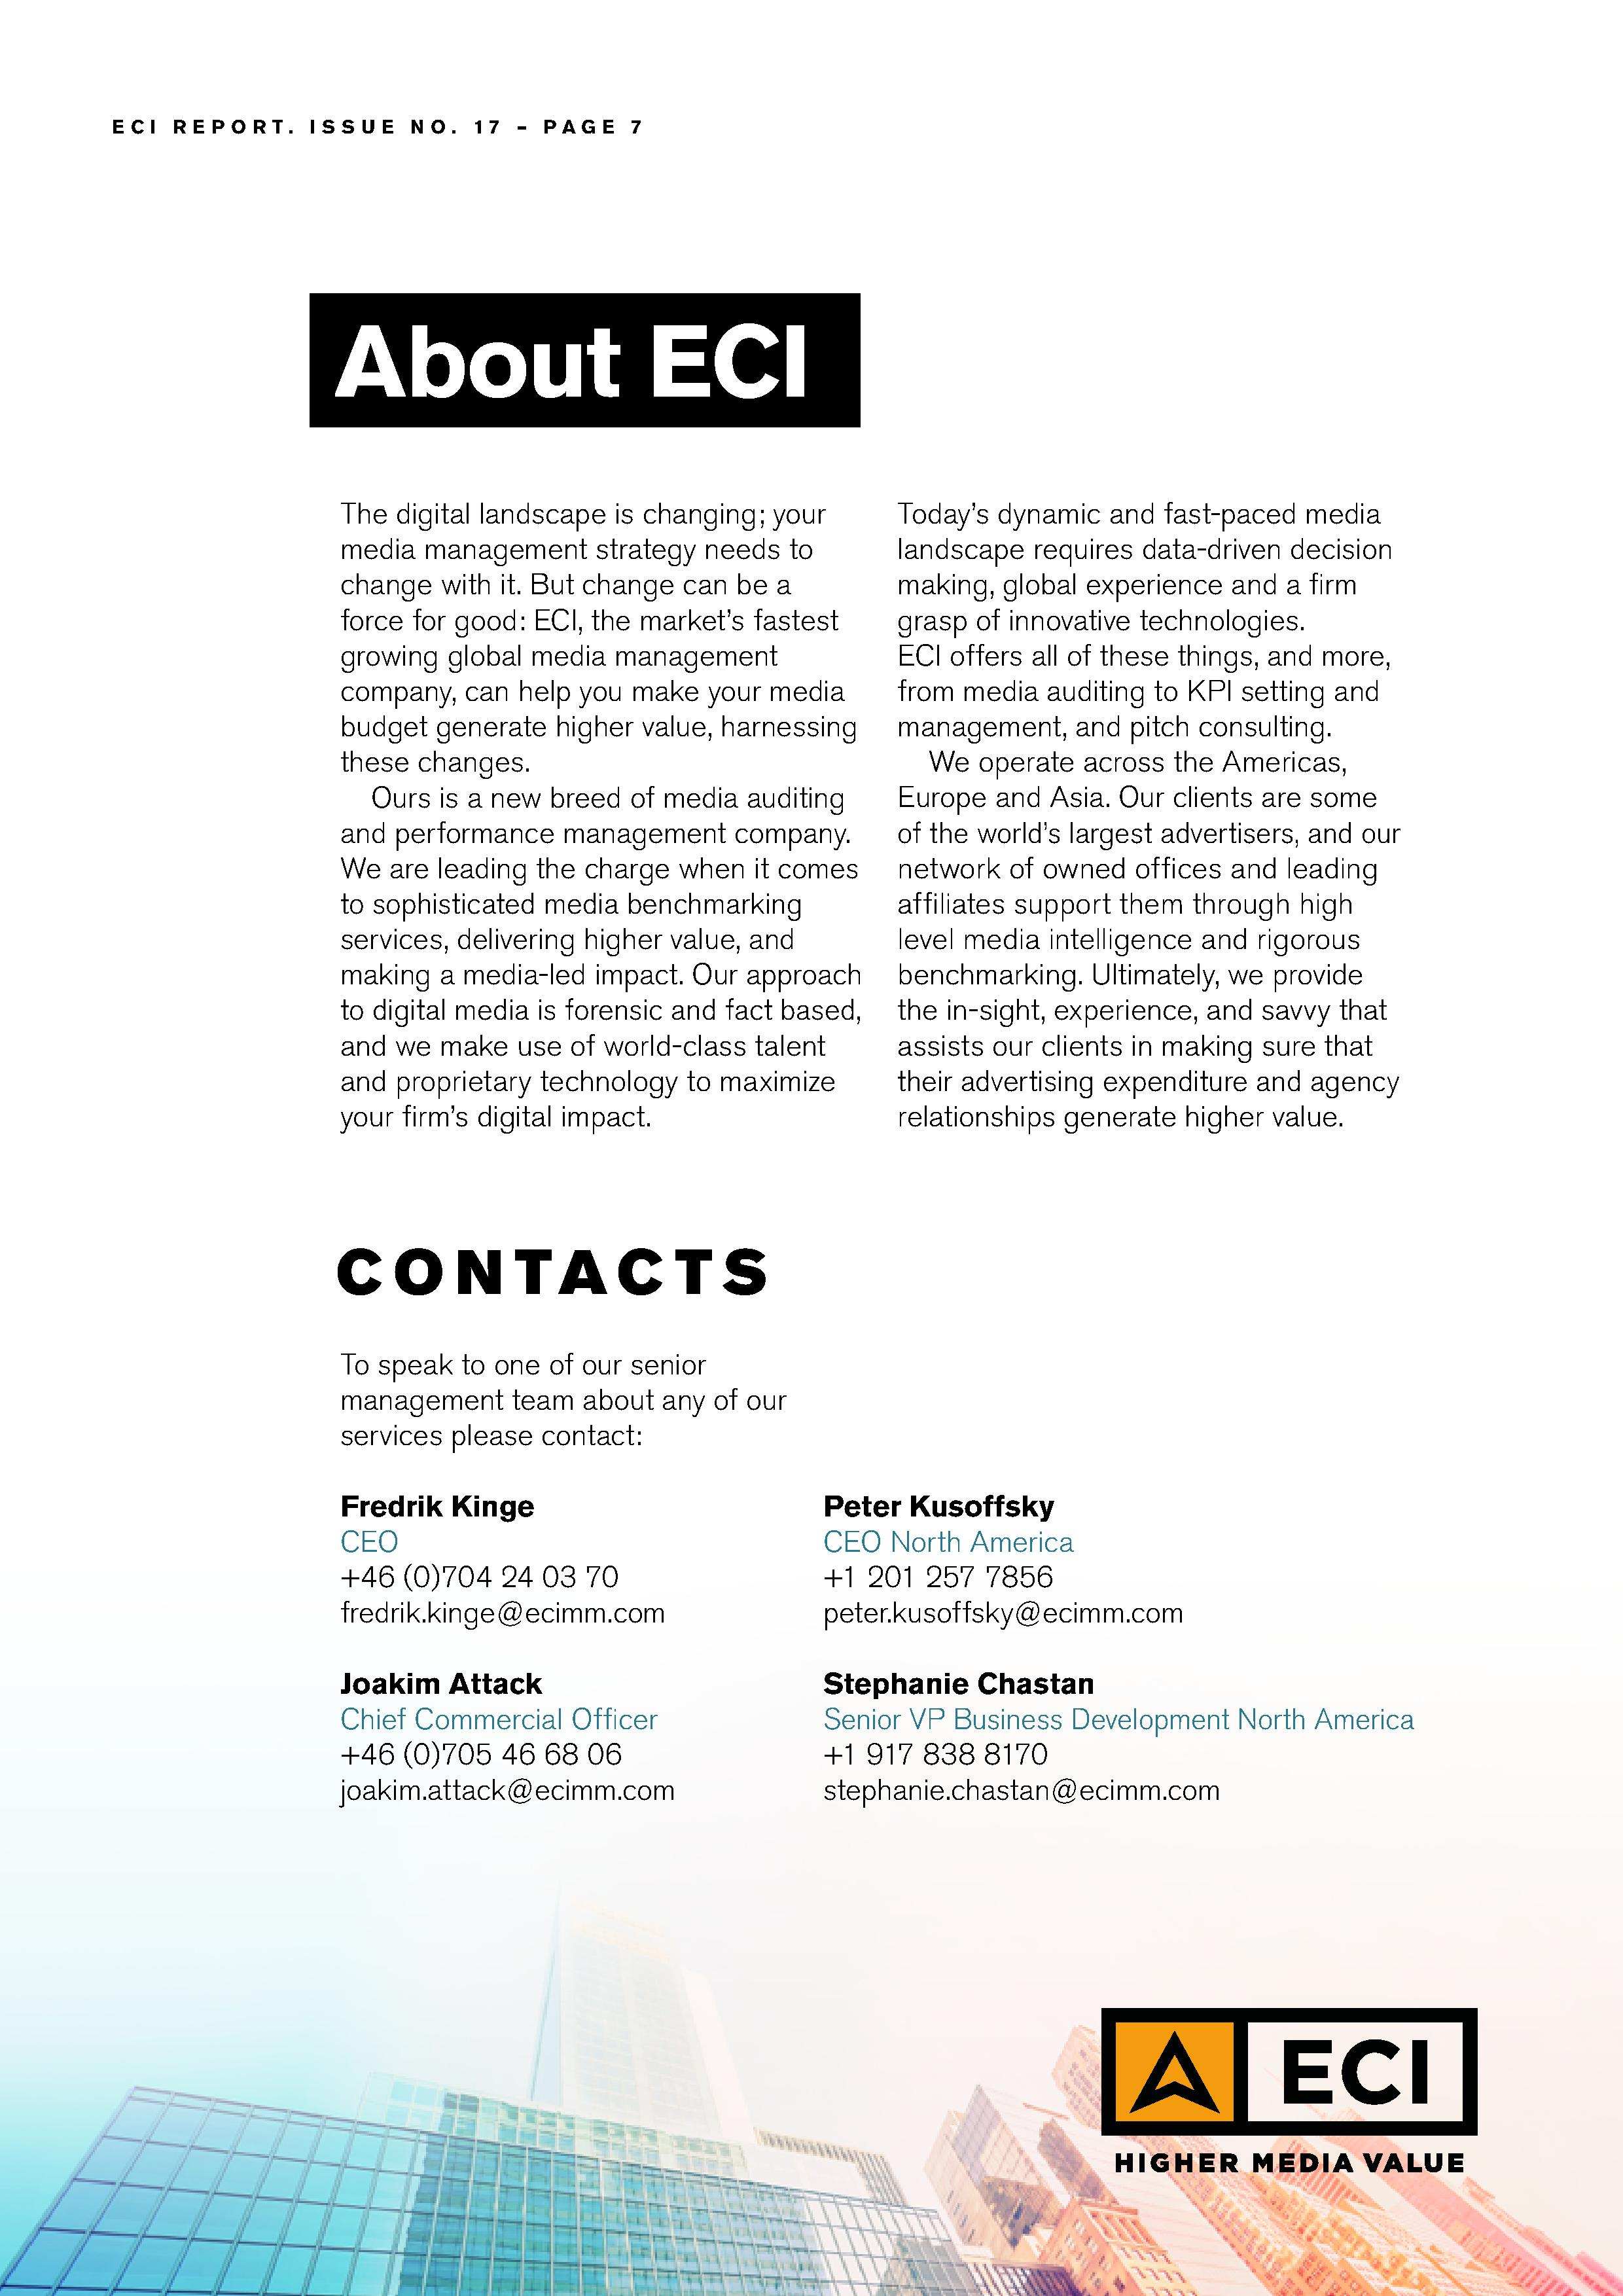 eci_report_issue17_2016007